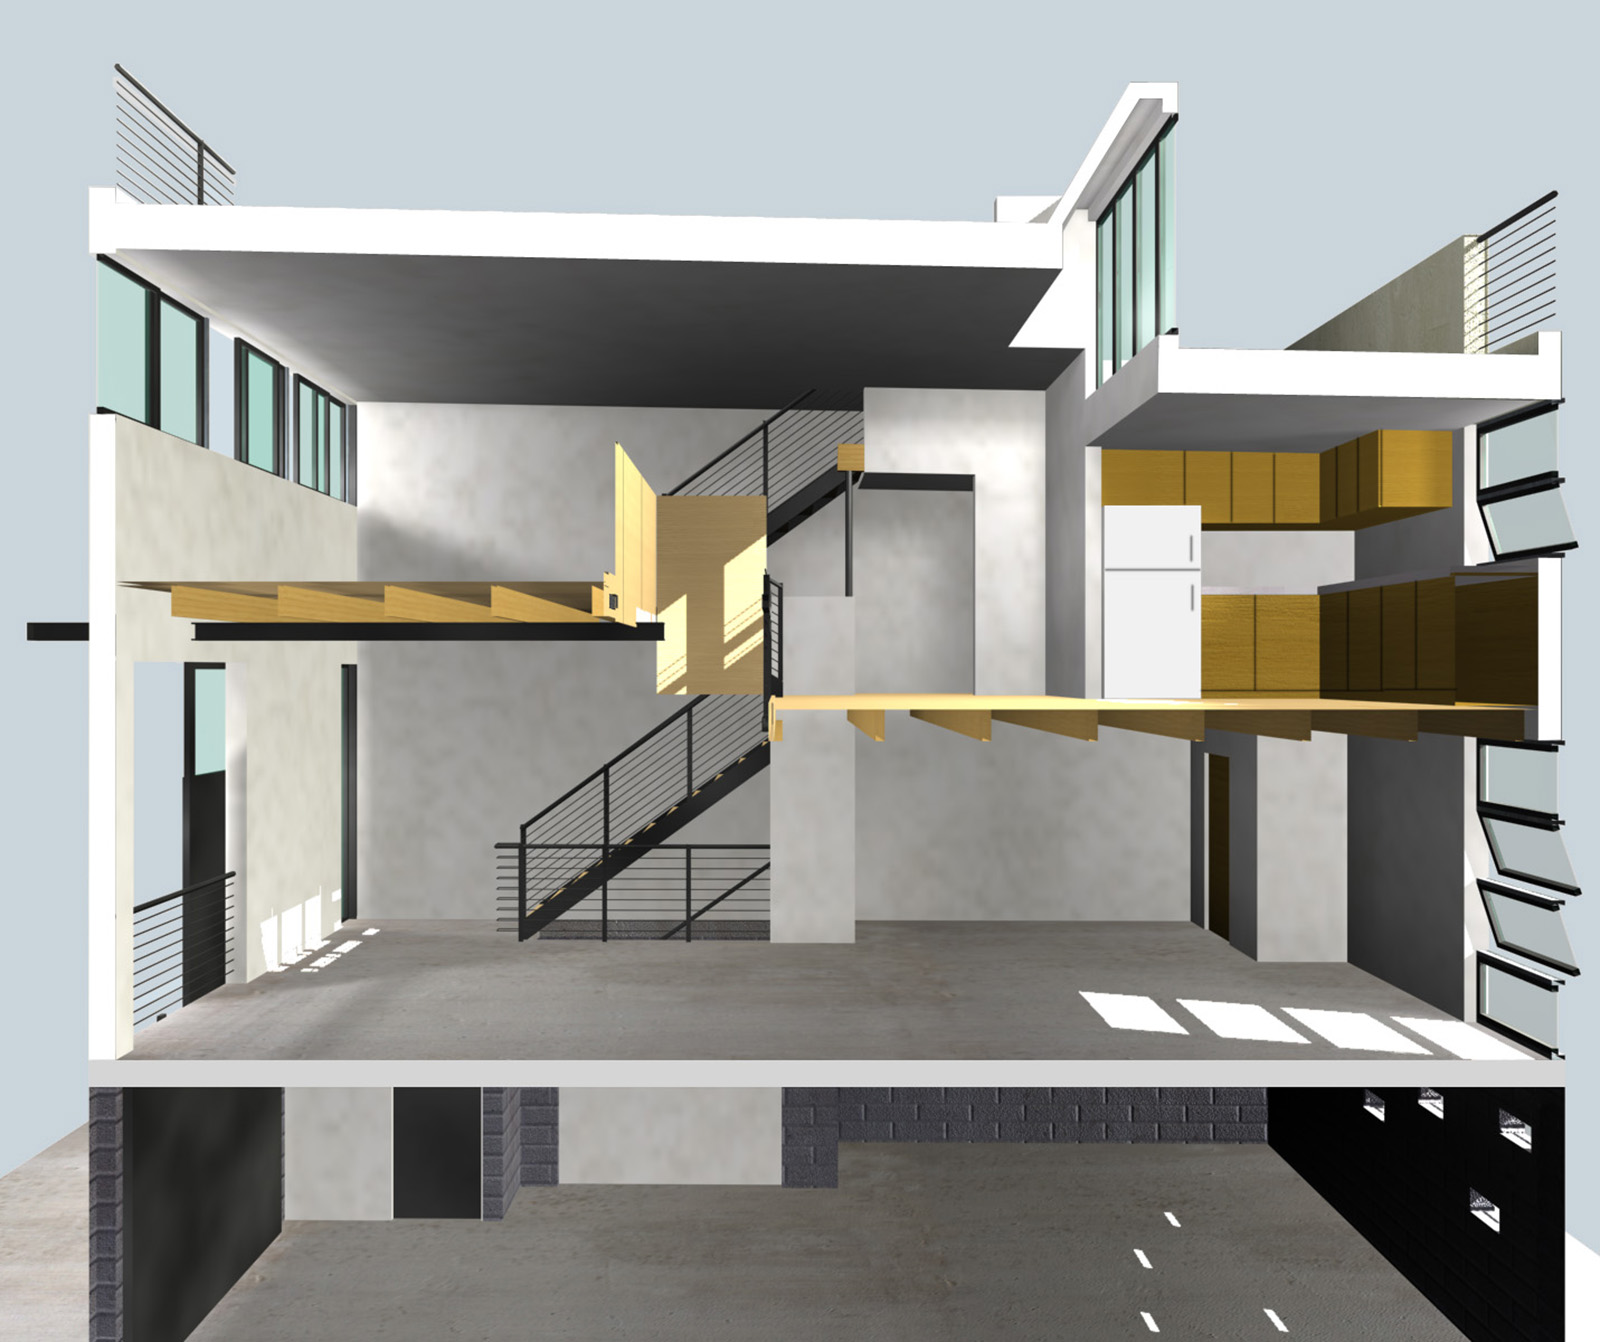 A section through a typical unit showing the relationship of the parking to working to living to leisure on the roof.